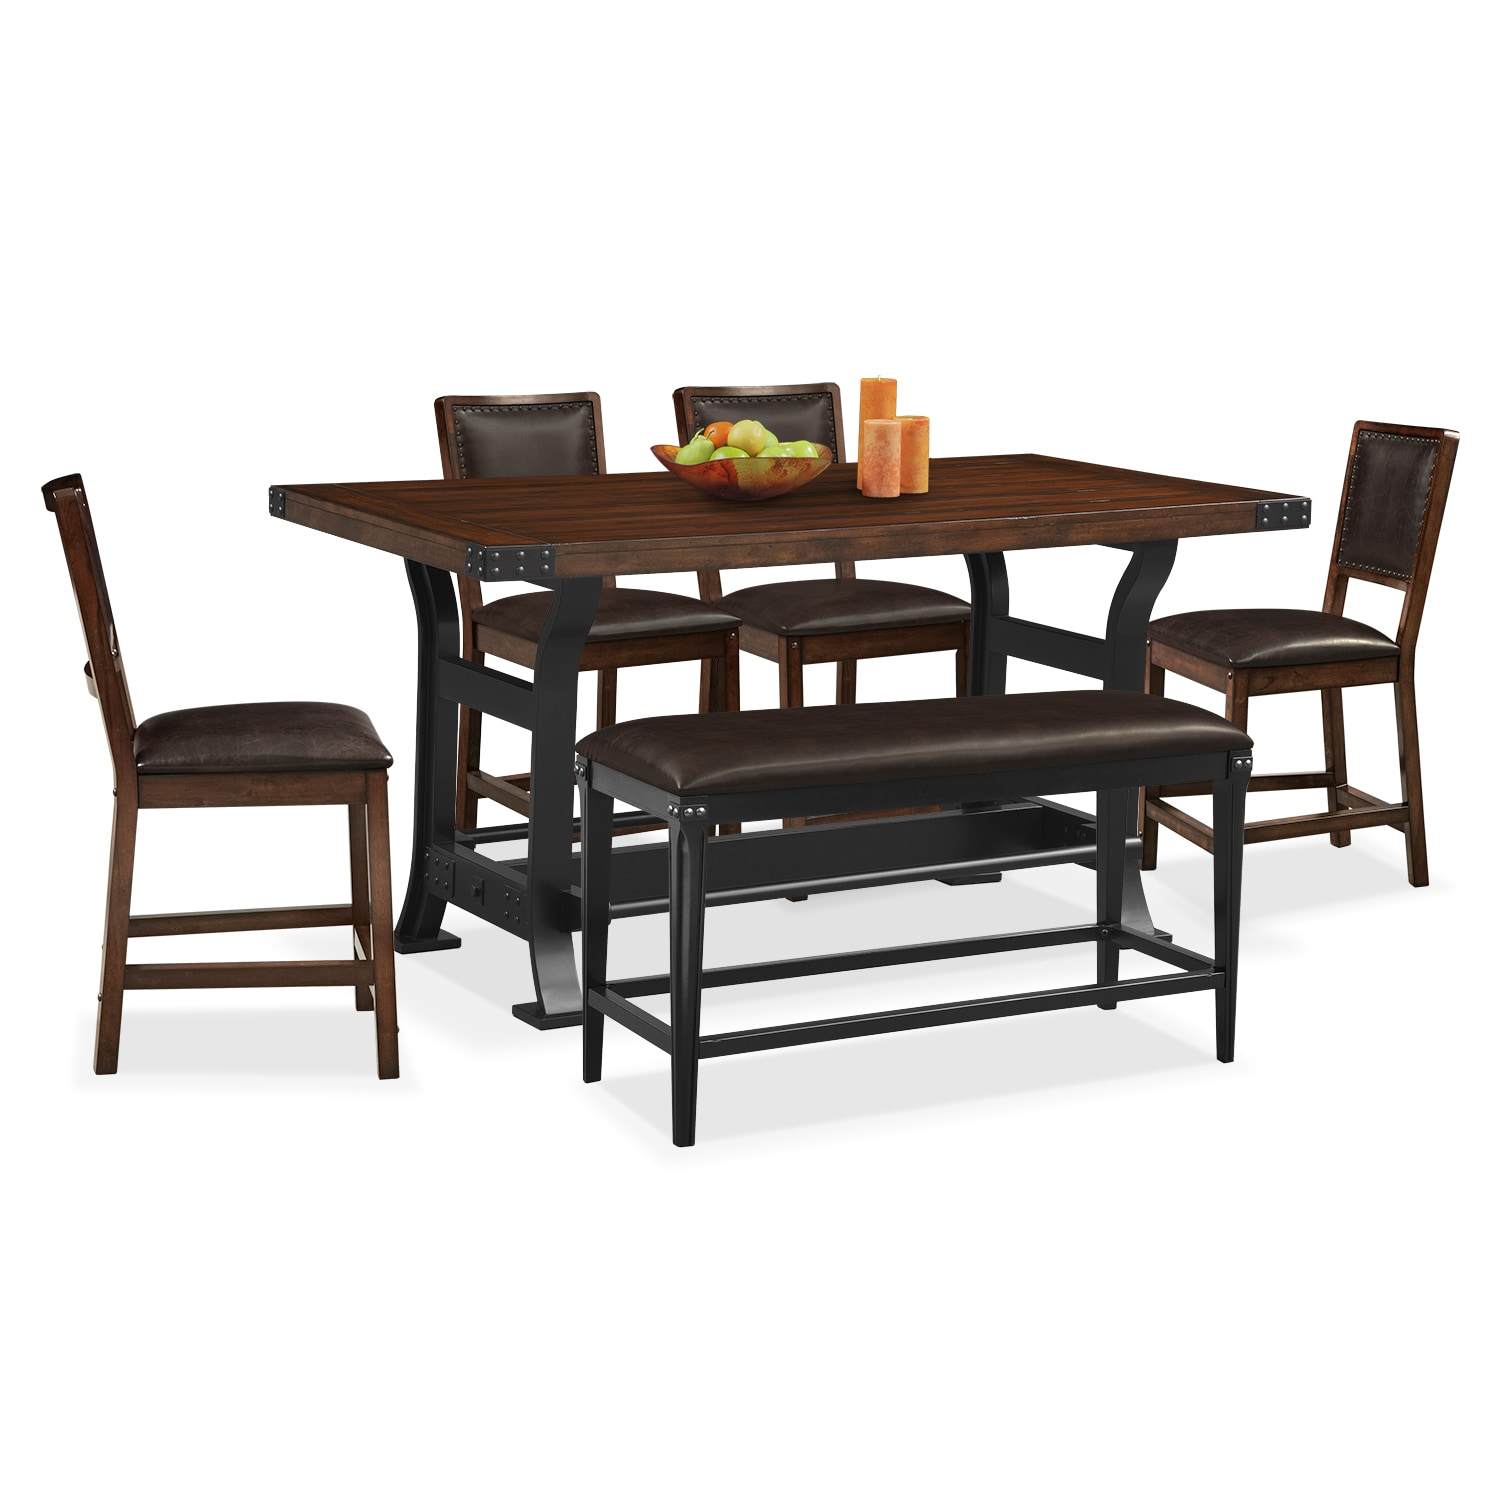 Newcastle Counter Height Table 4 Chairs and Bench  : 433286 from www.valuecityfurniture.com size 1500 x 1500 jpeg 154kB